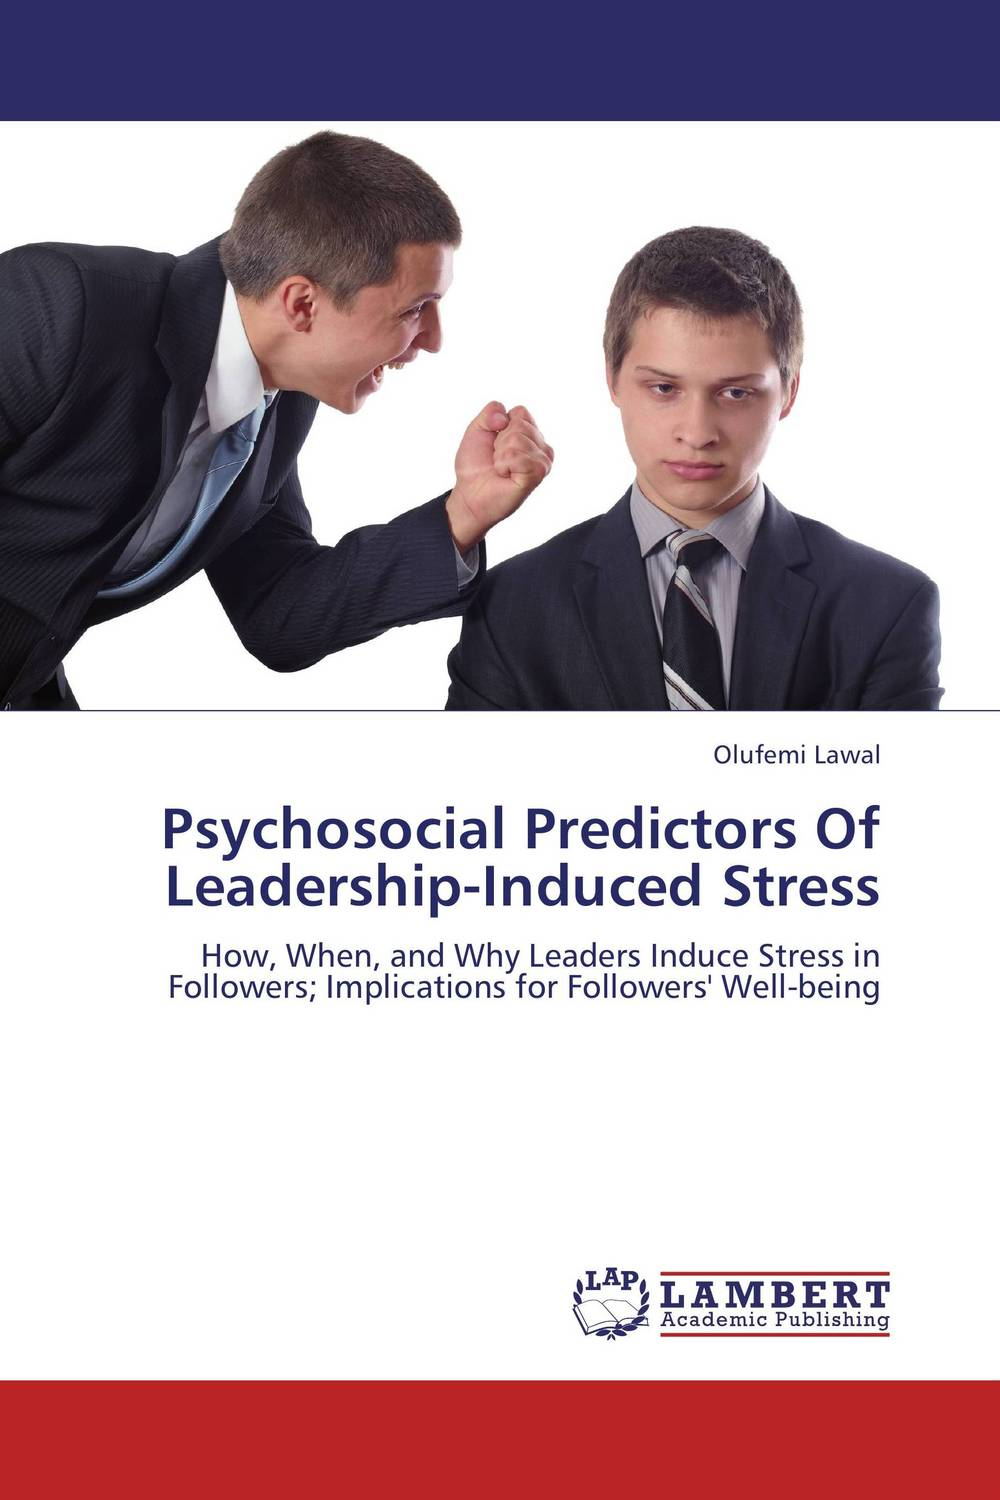 Psychosocial Predictors Of Leadership-Induced Stress peter schein organizational culture and leadership